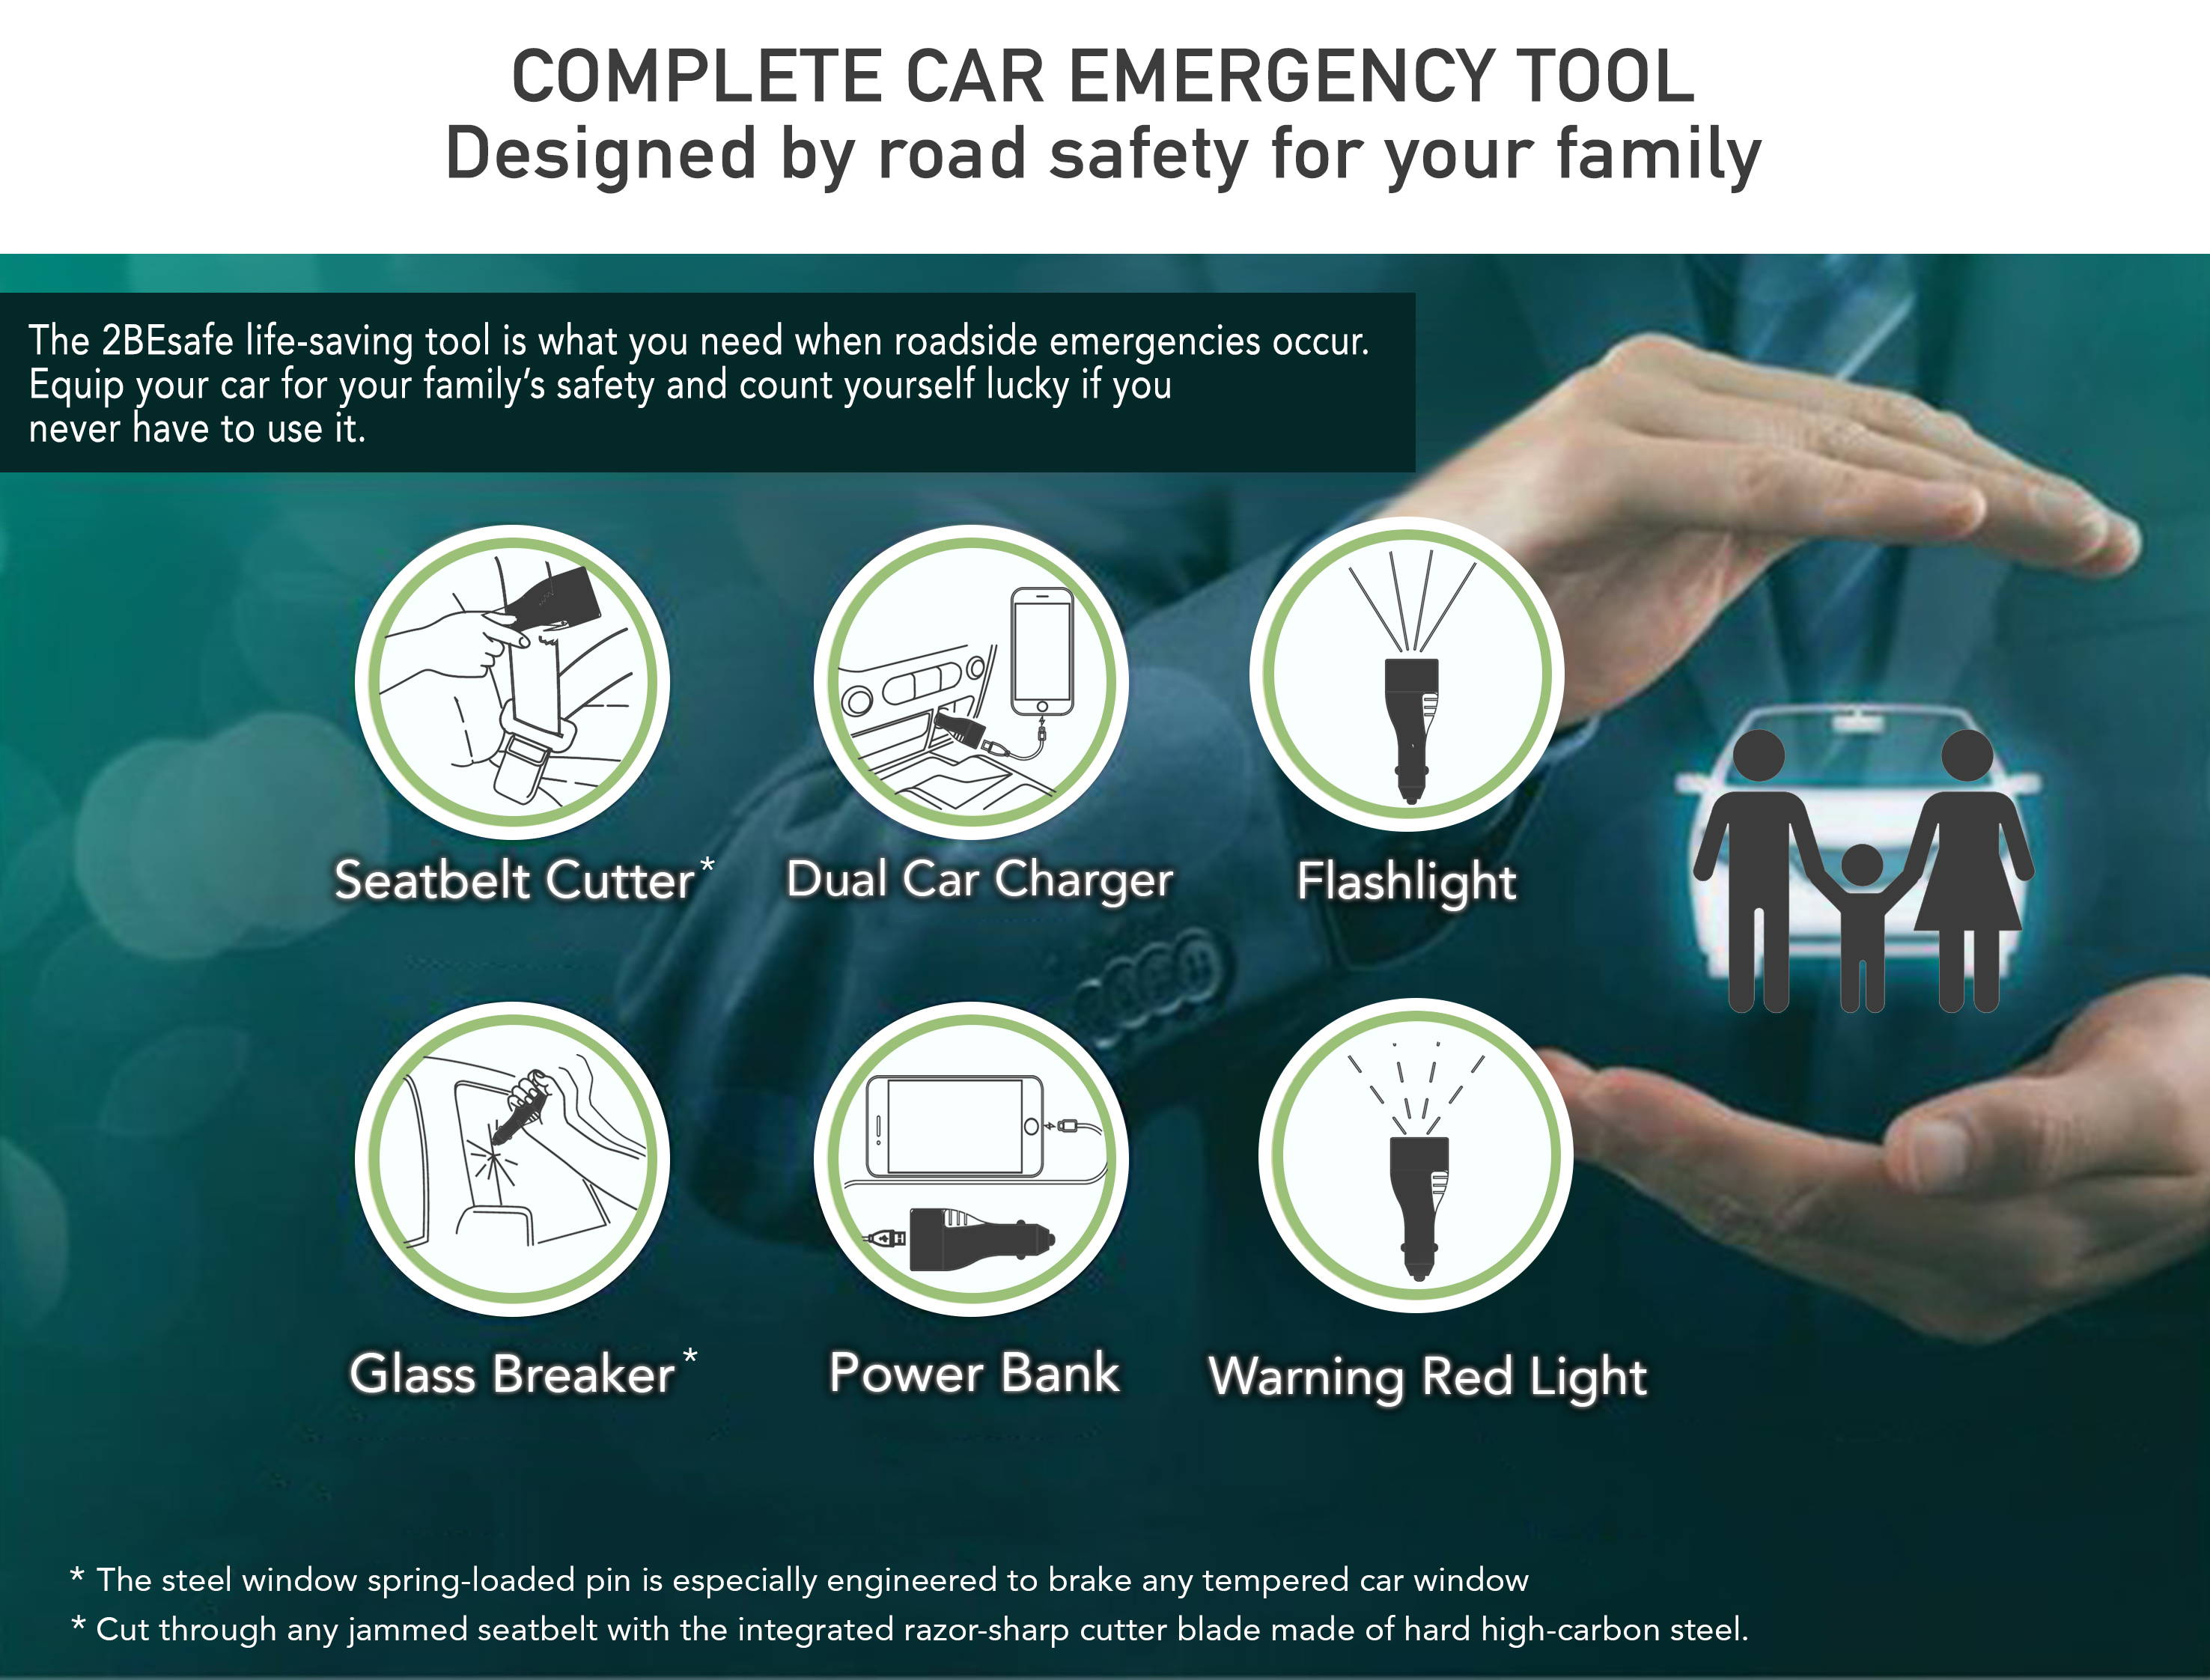 2BEsafe life-saving tool is what you need when roadside emergencies occur. Equip your car for your family's safety and count yourself lucky if you never have to use it.